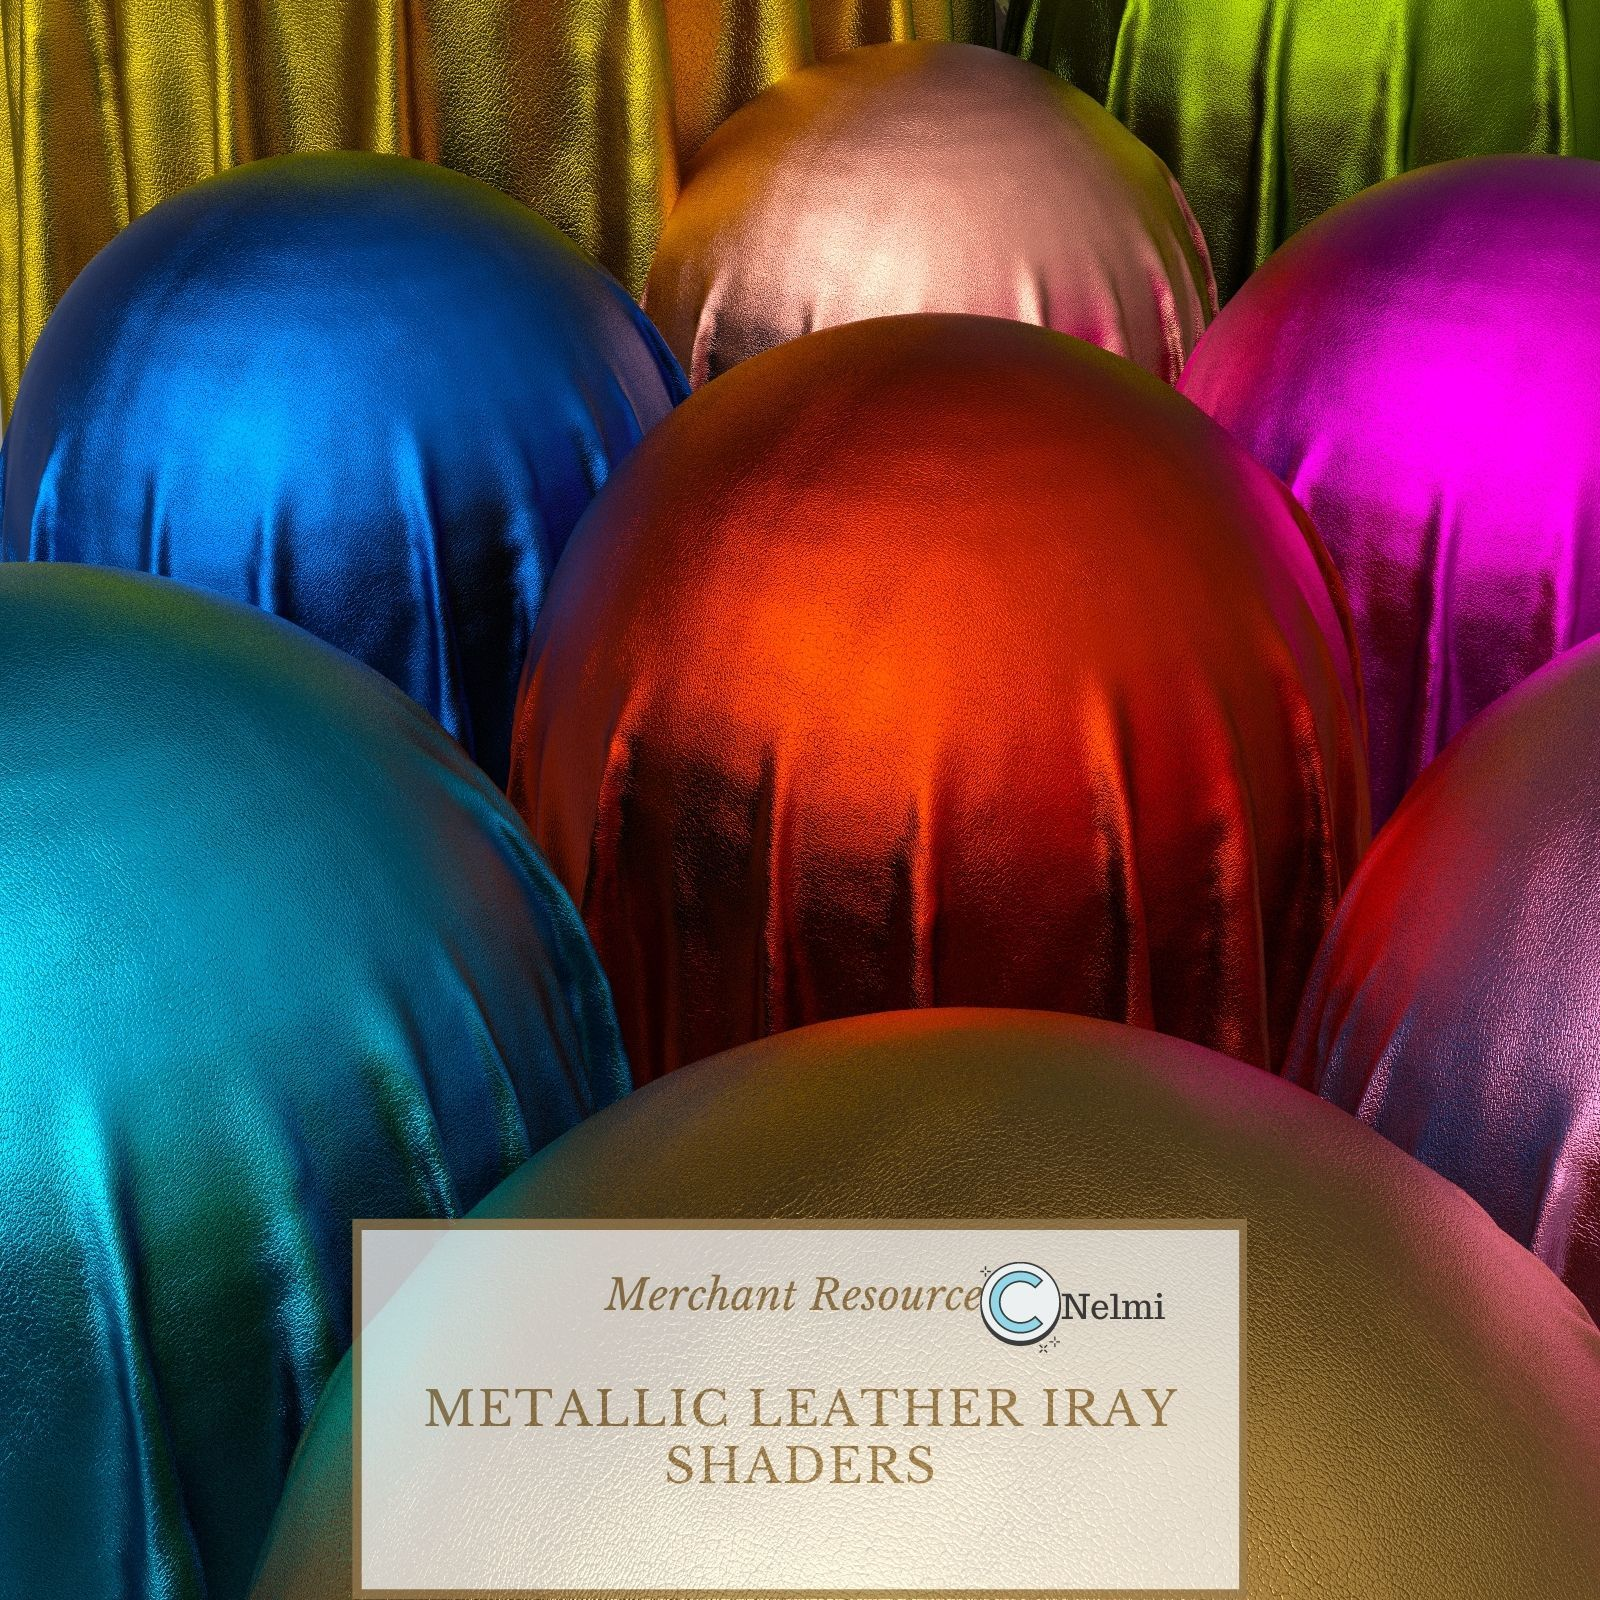 Metallic Leather Iray Shaders